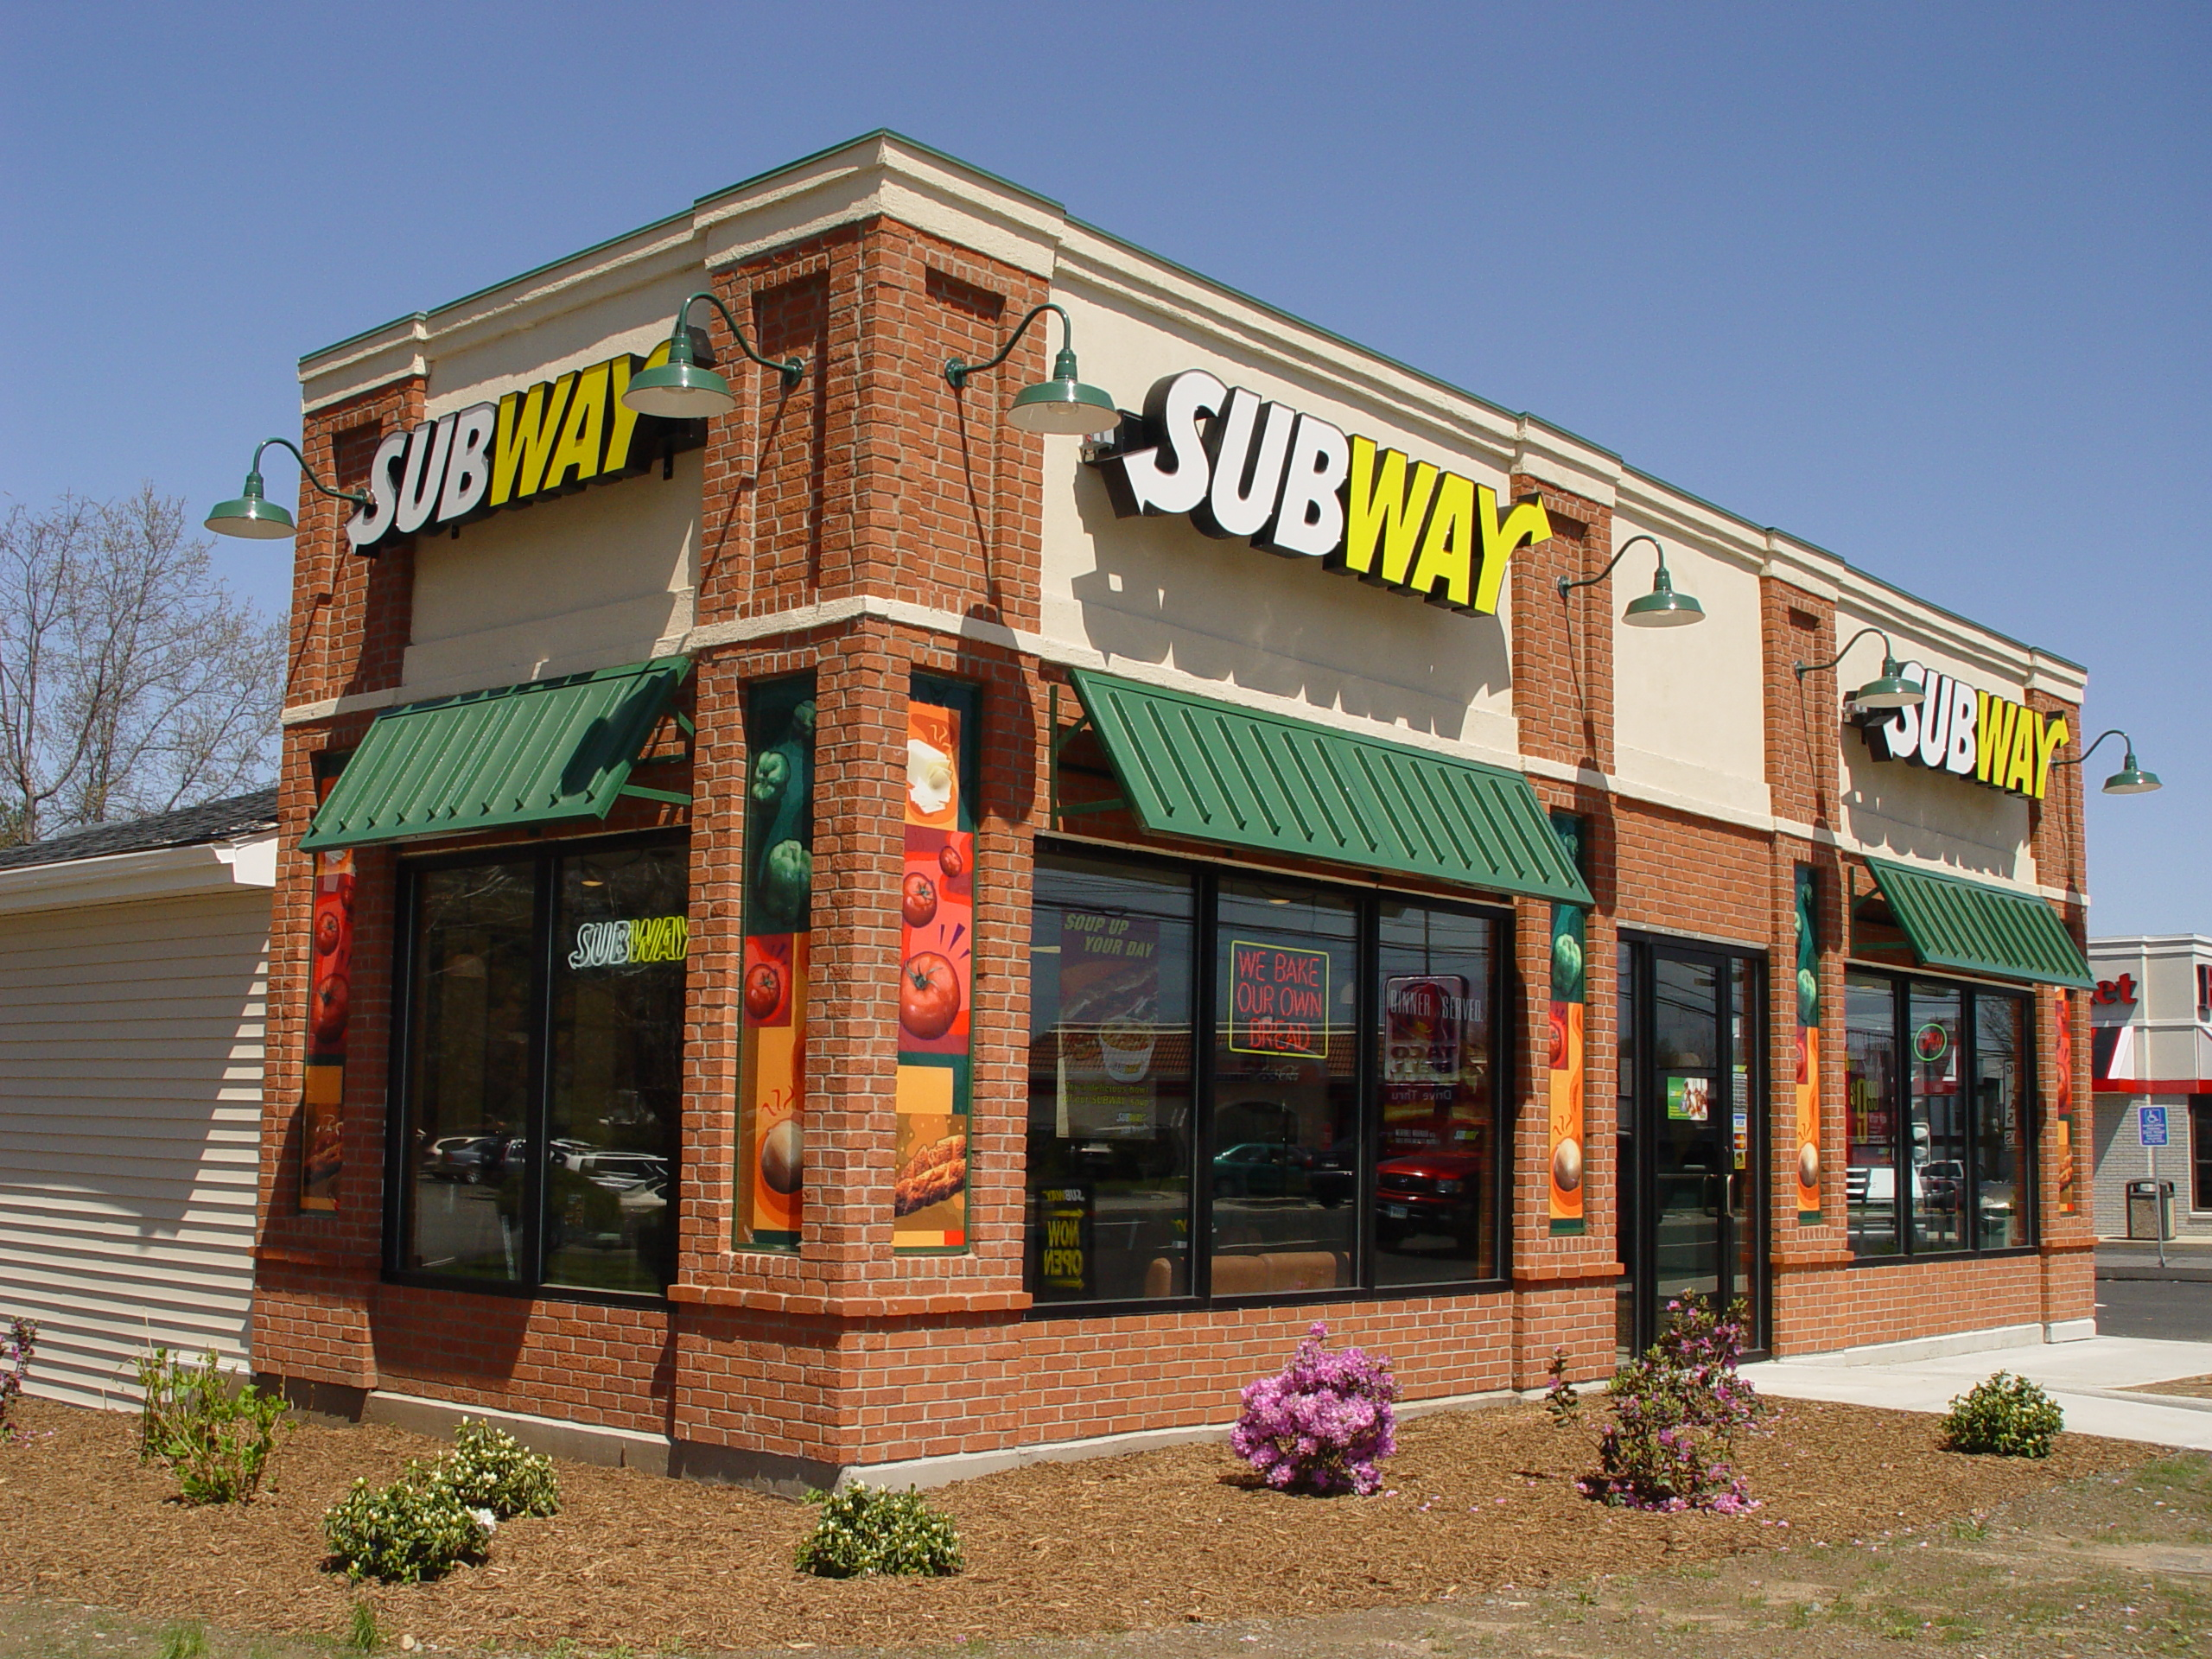 Subway, Woodbury TN